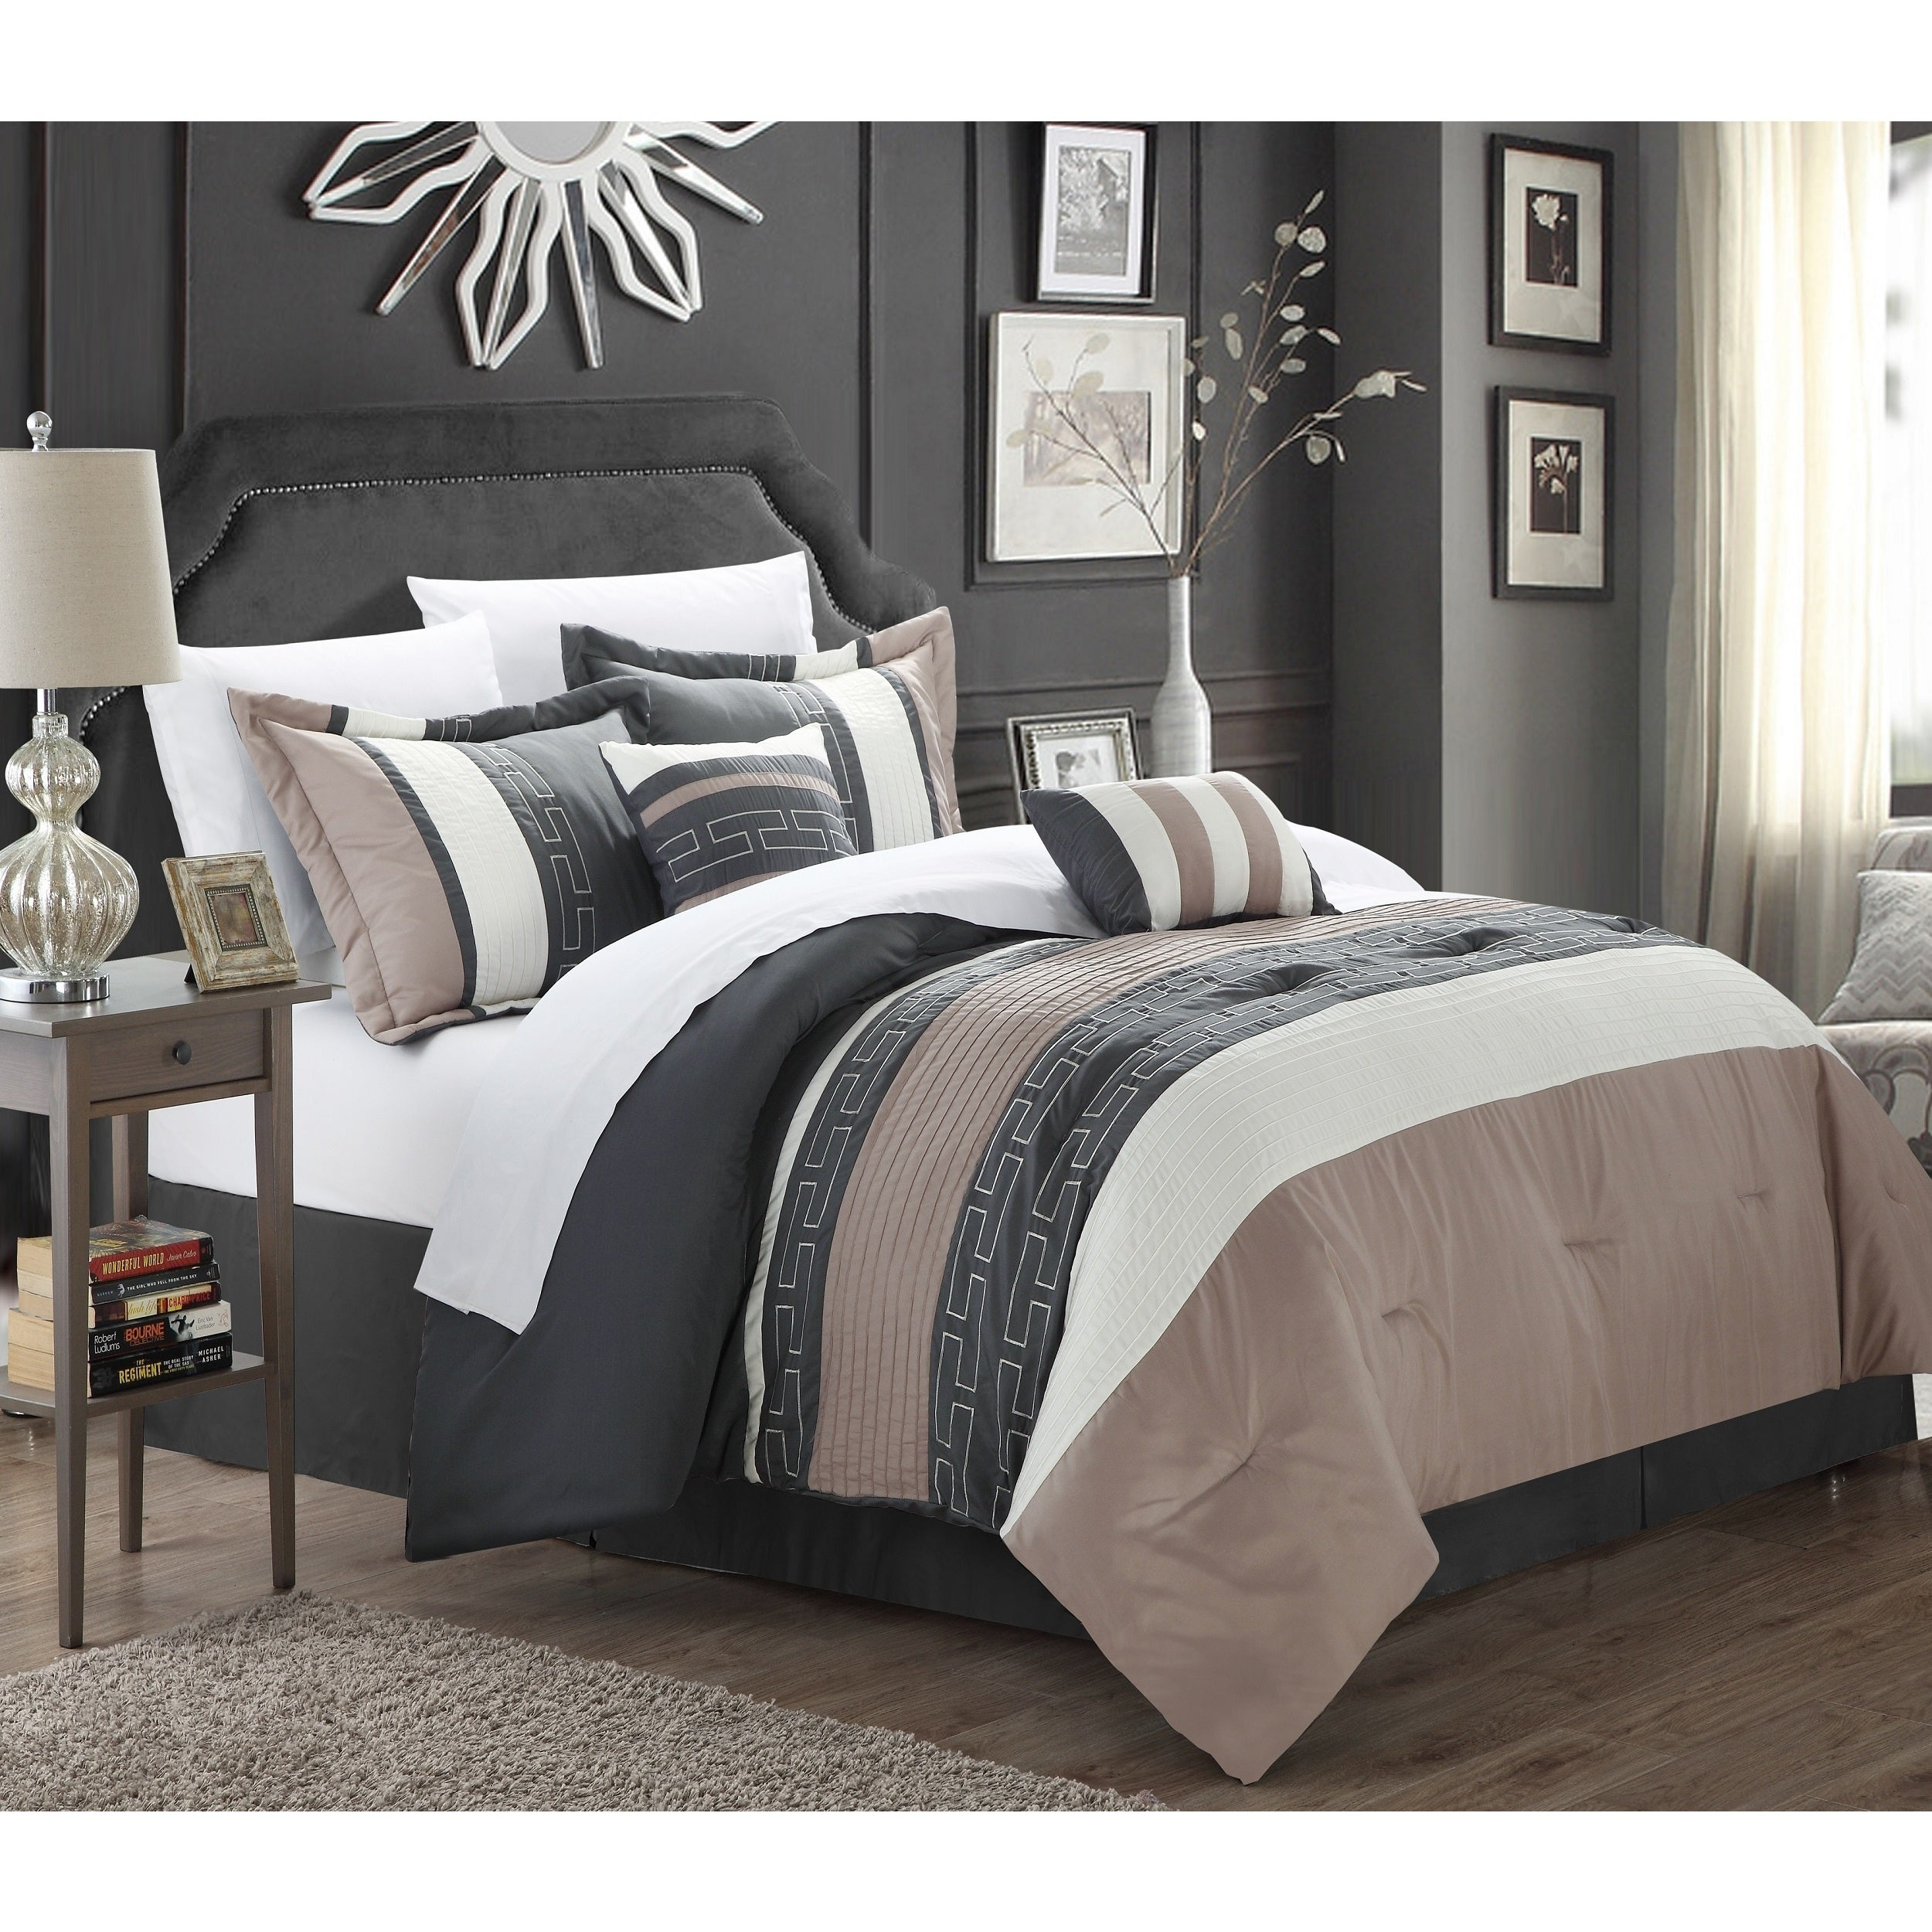 bedding hotel comforter milano overstock bath product sets today free shipping set